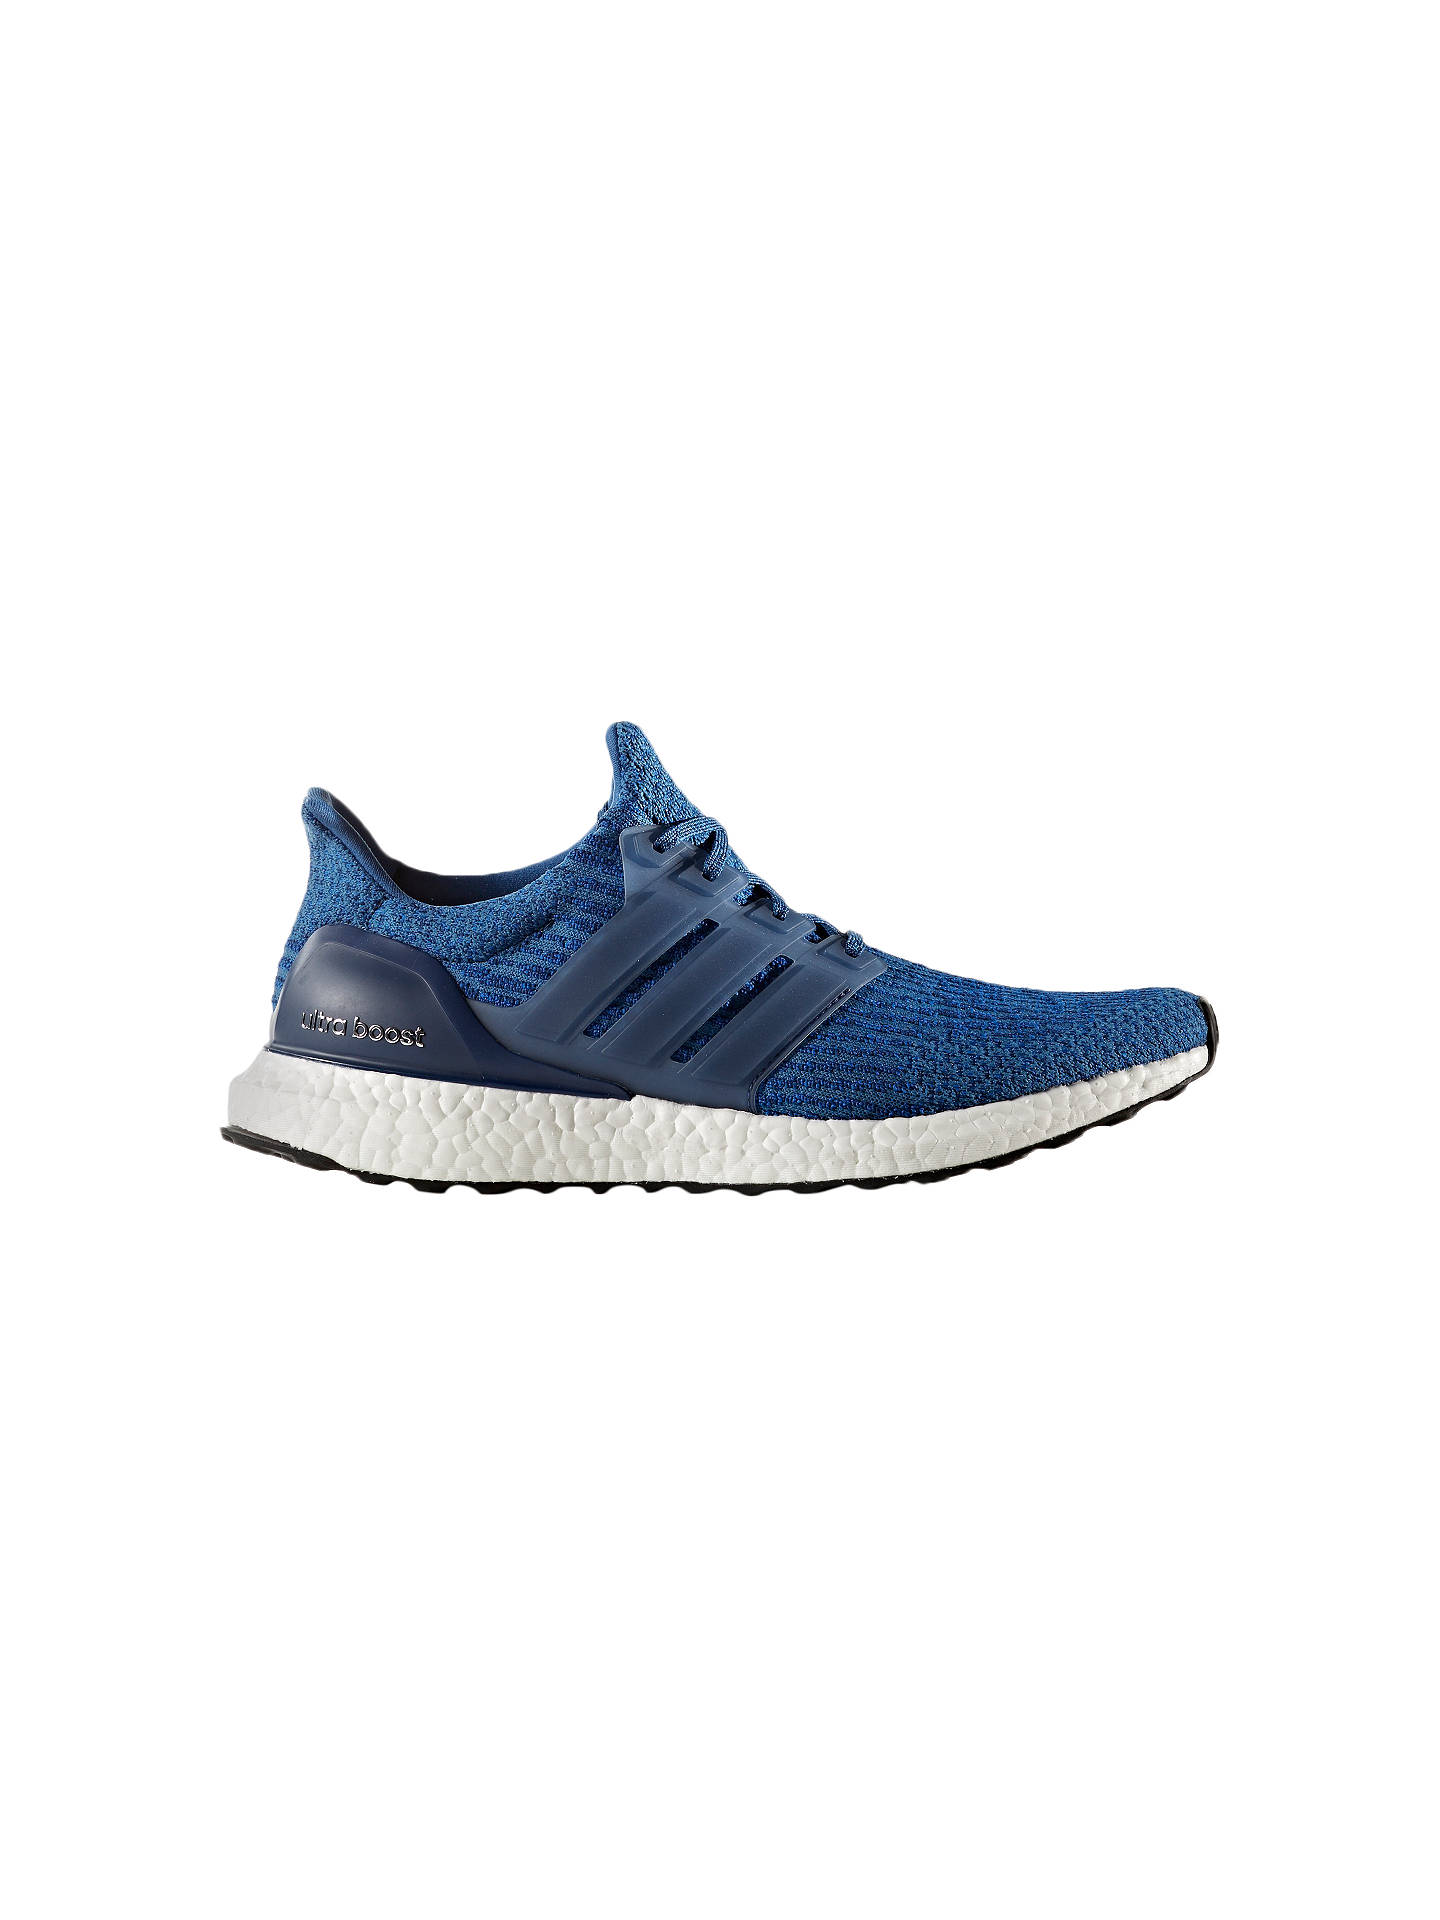 1875f333ead Buy adidas Ultra Boost Men s Running Shoes